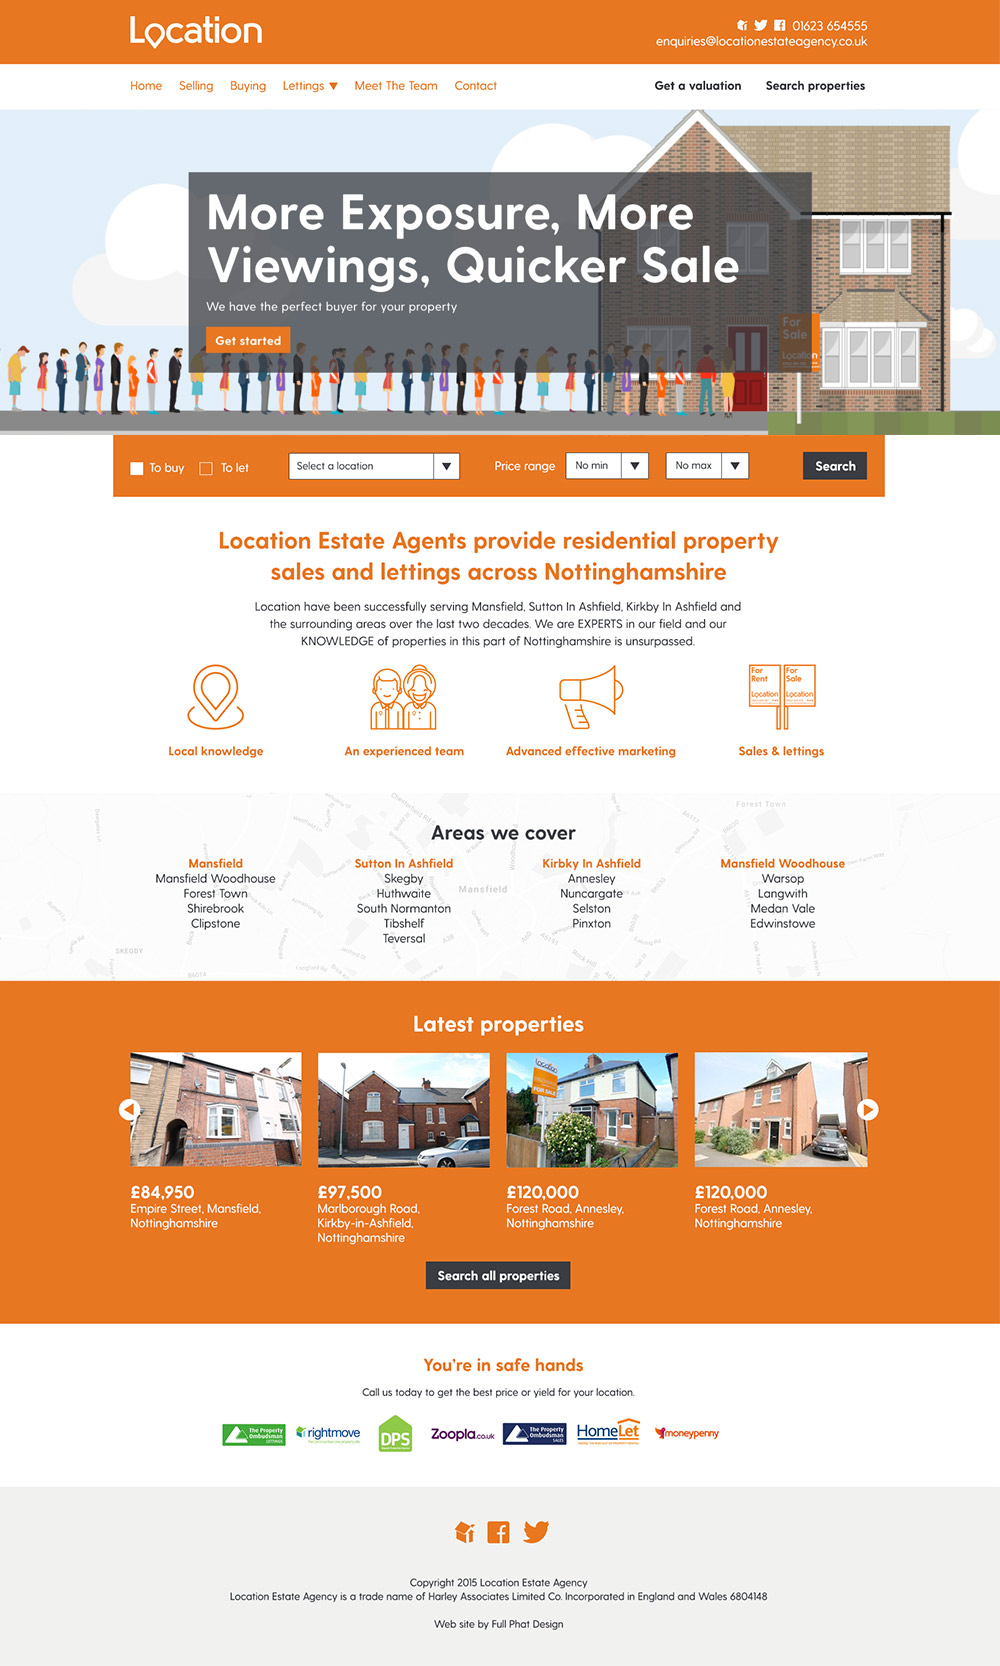 Location Estate Agency Web Site Design And Development